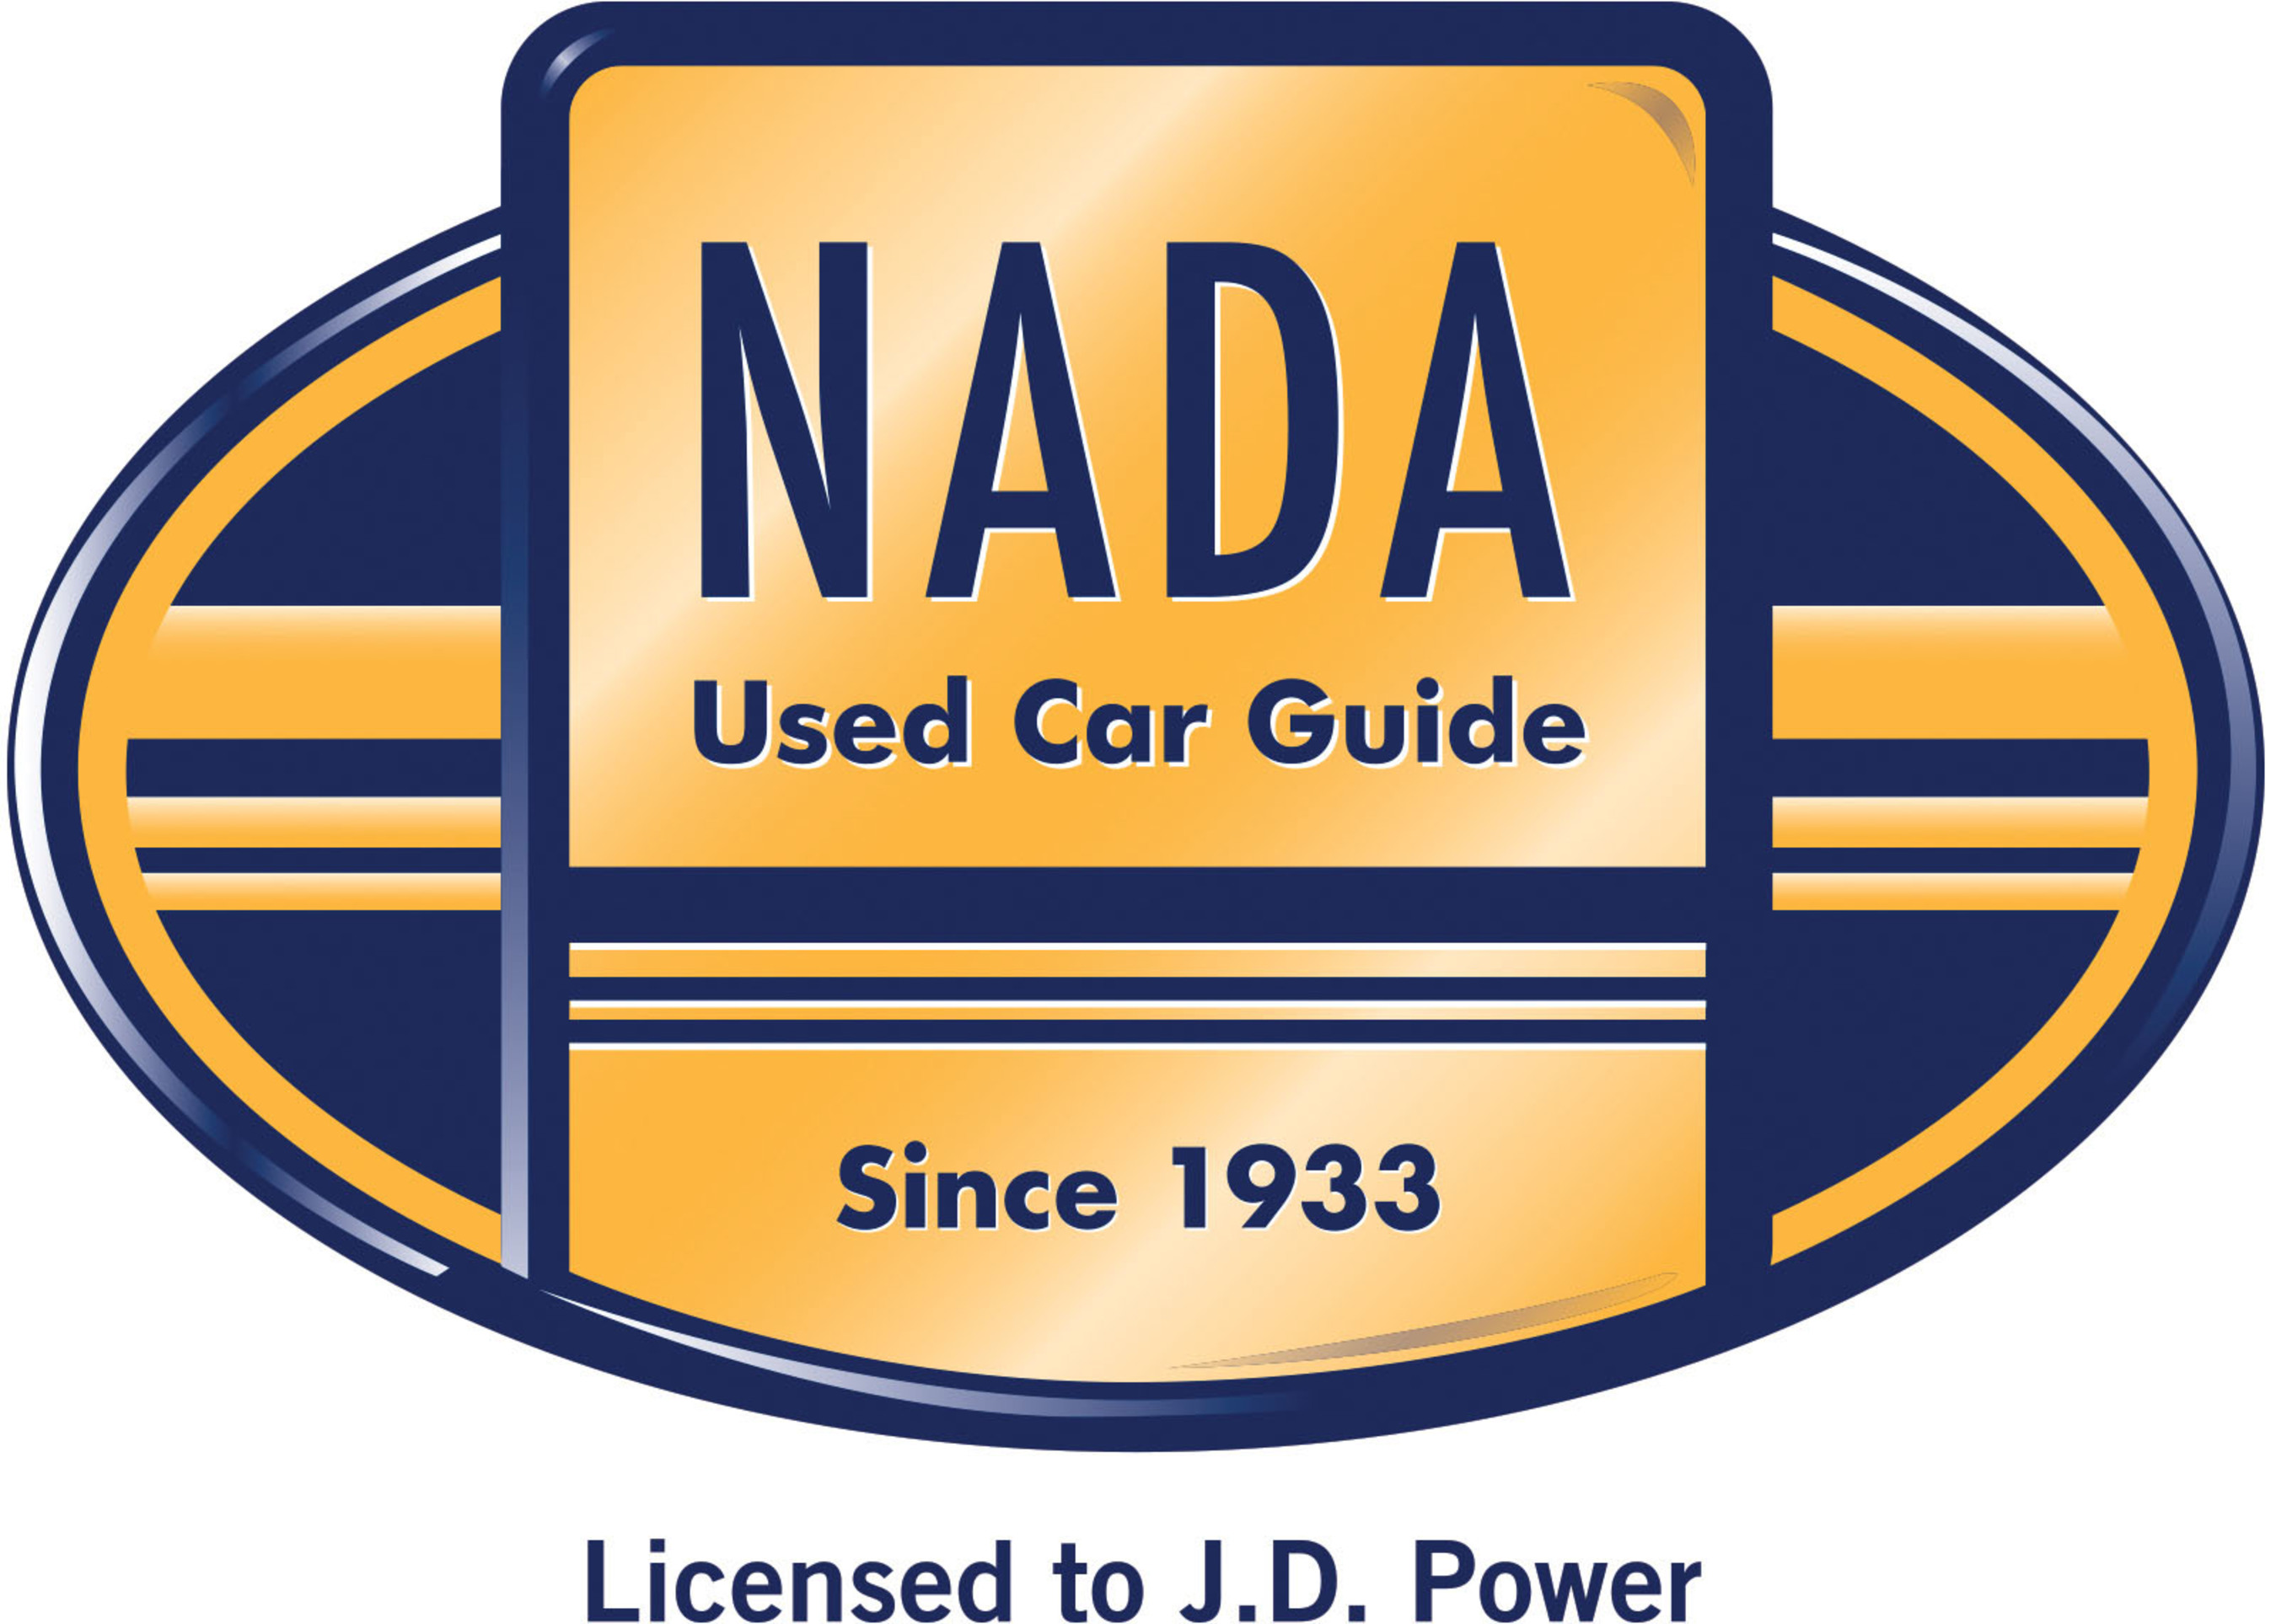 Nada Used Car Guide Launches Nada Values Online Adds New Vehicle